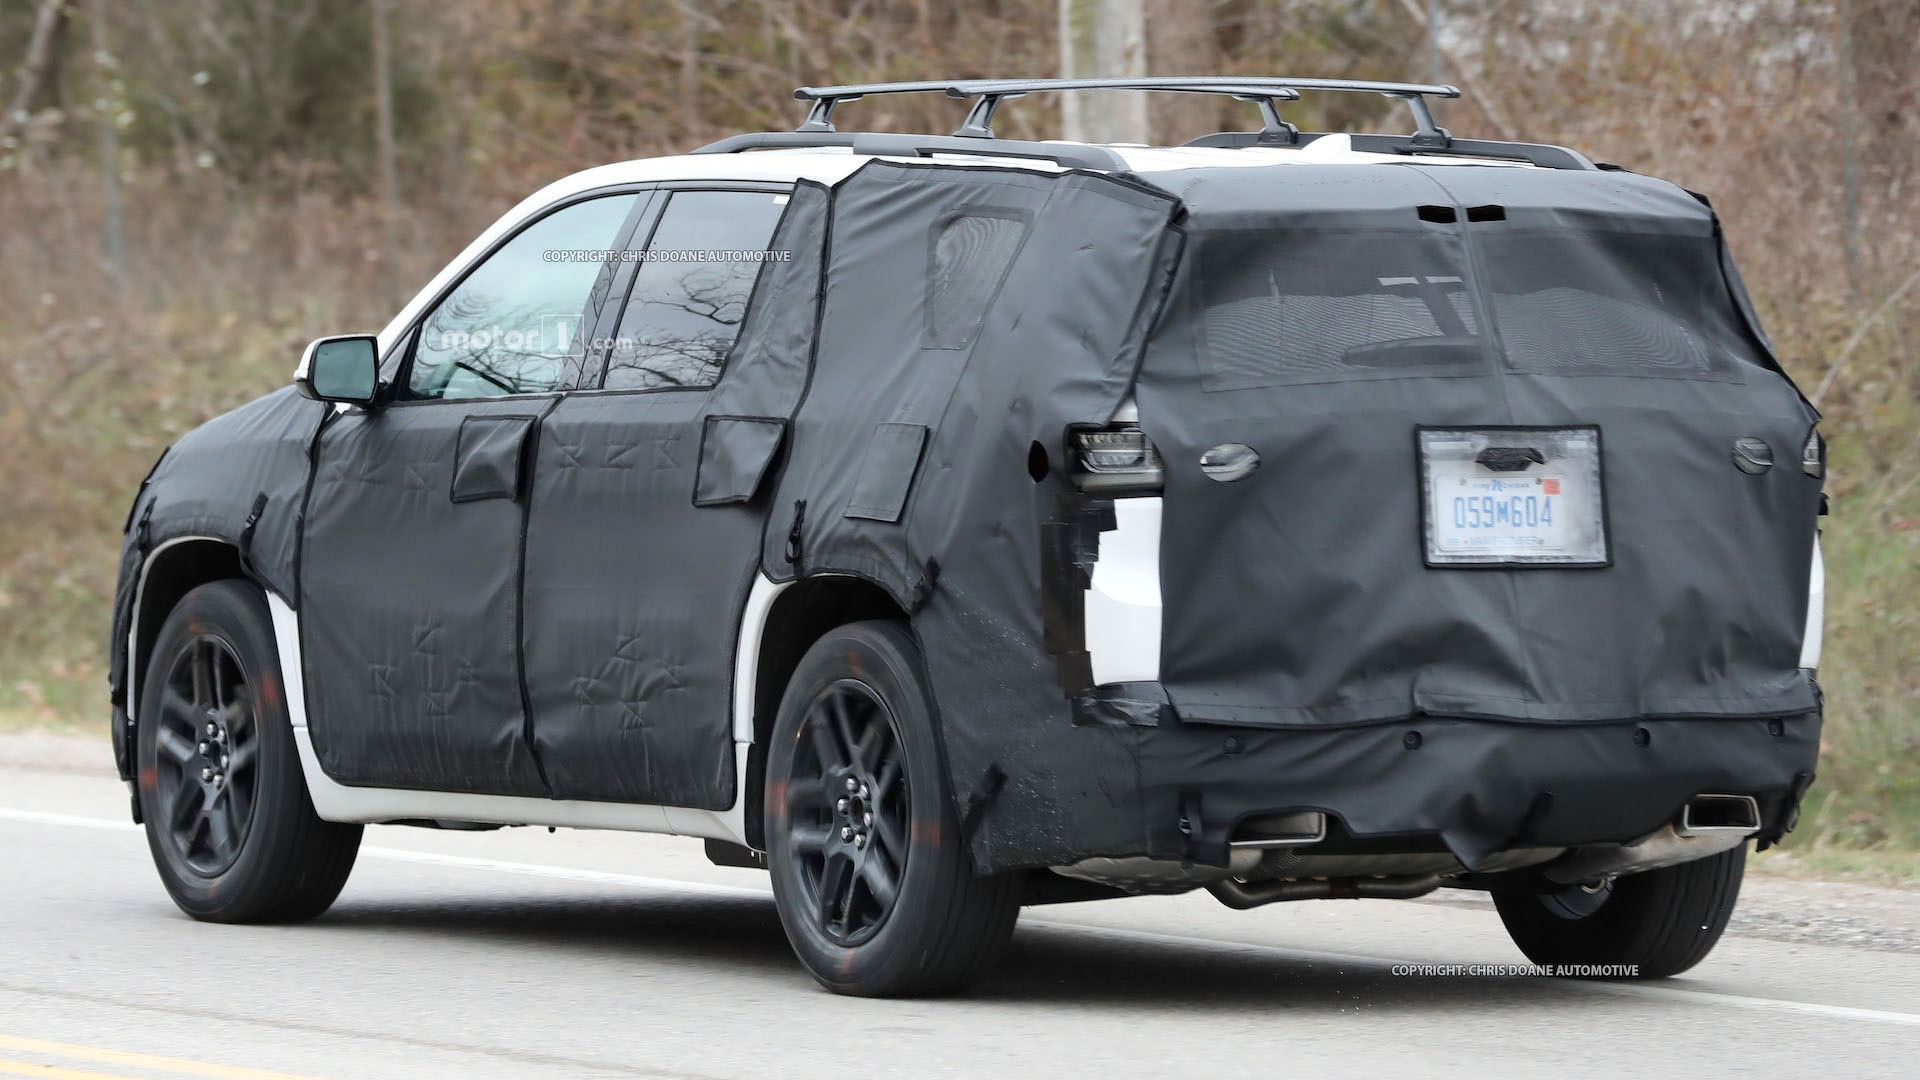 2018-chevy-cuv-spy-photos-11